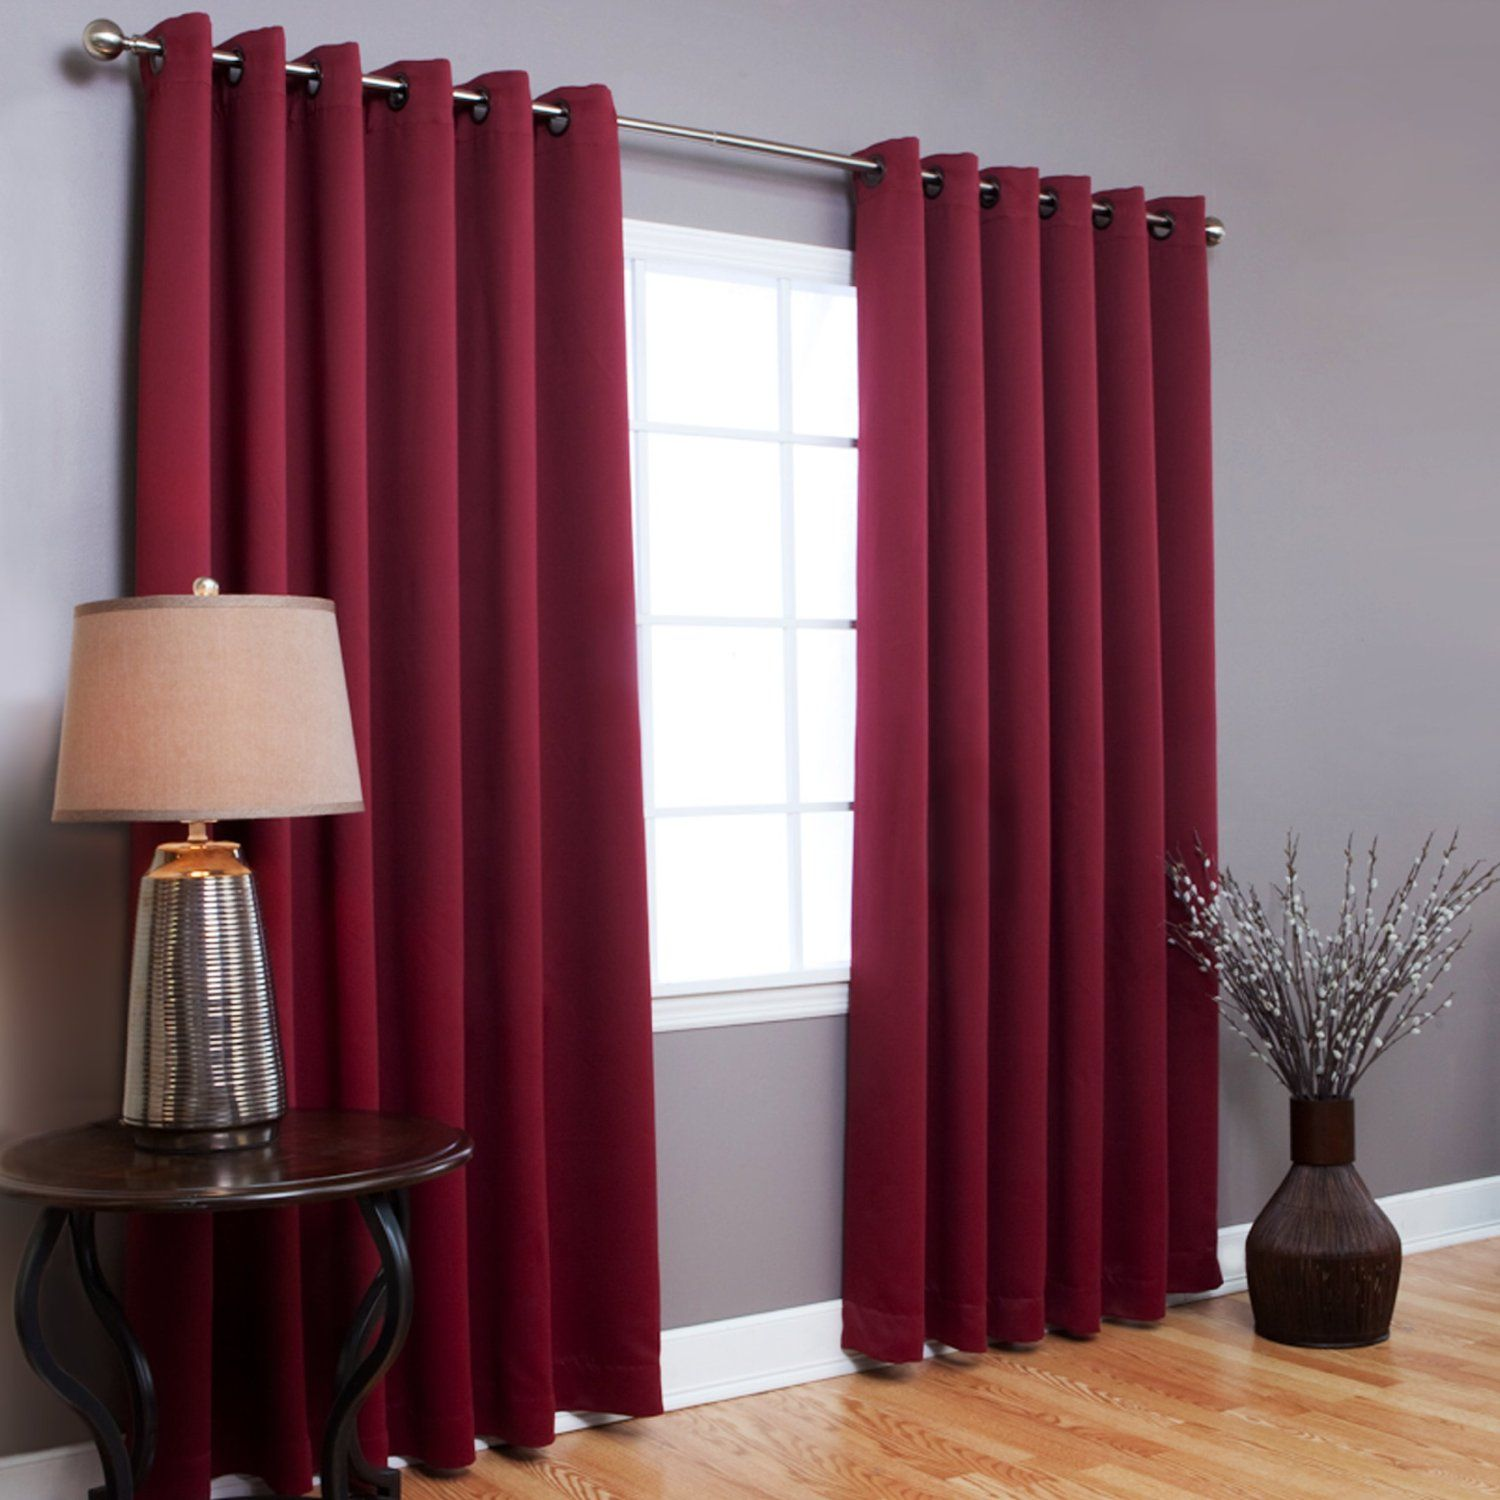 Curtains For Grey Walls Red Curtains For Our Lounge Room House Pinterest Red